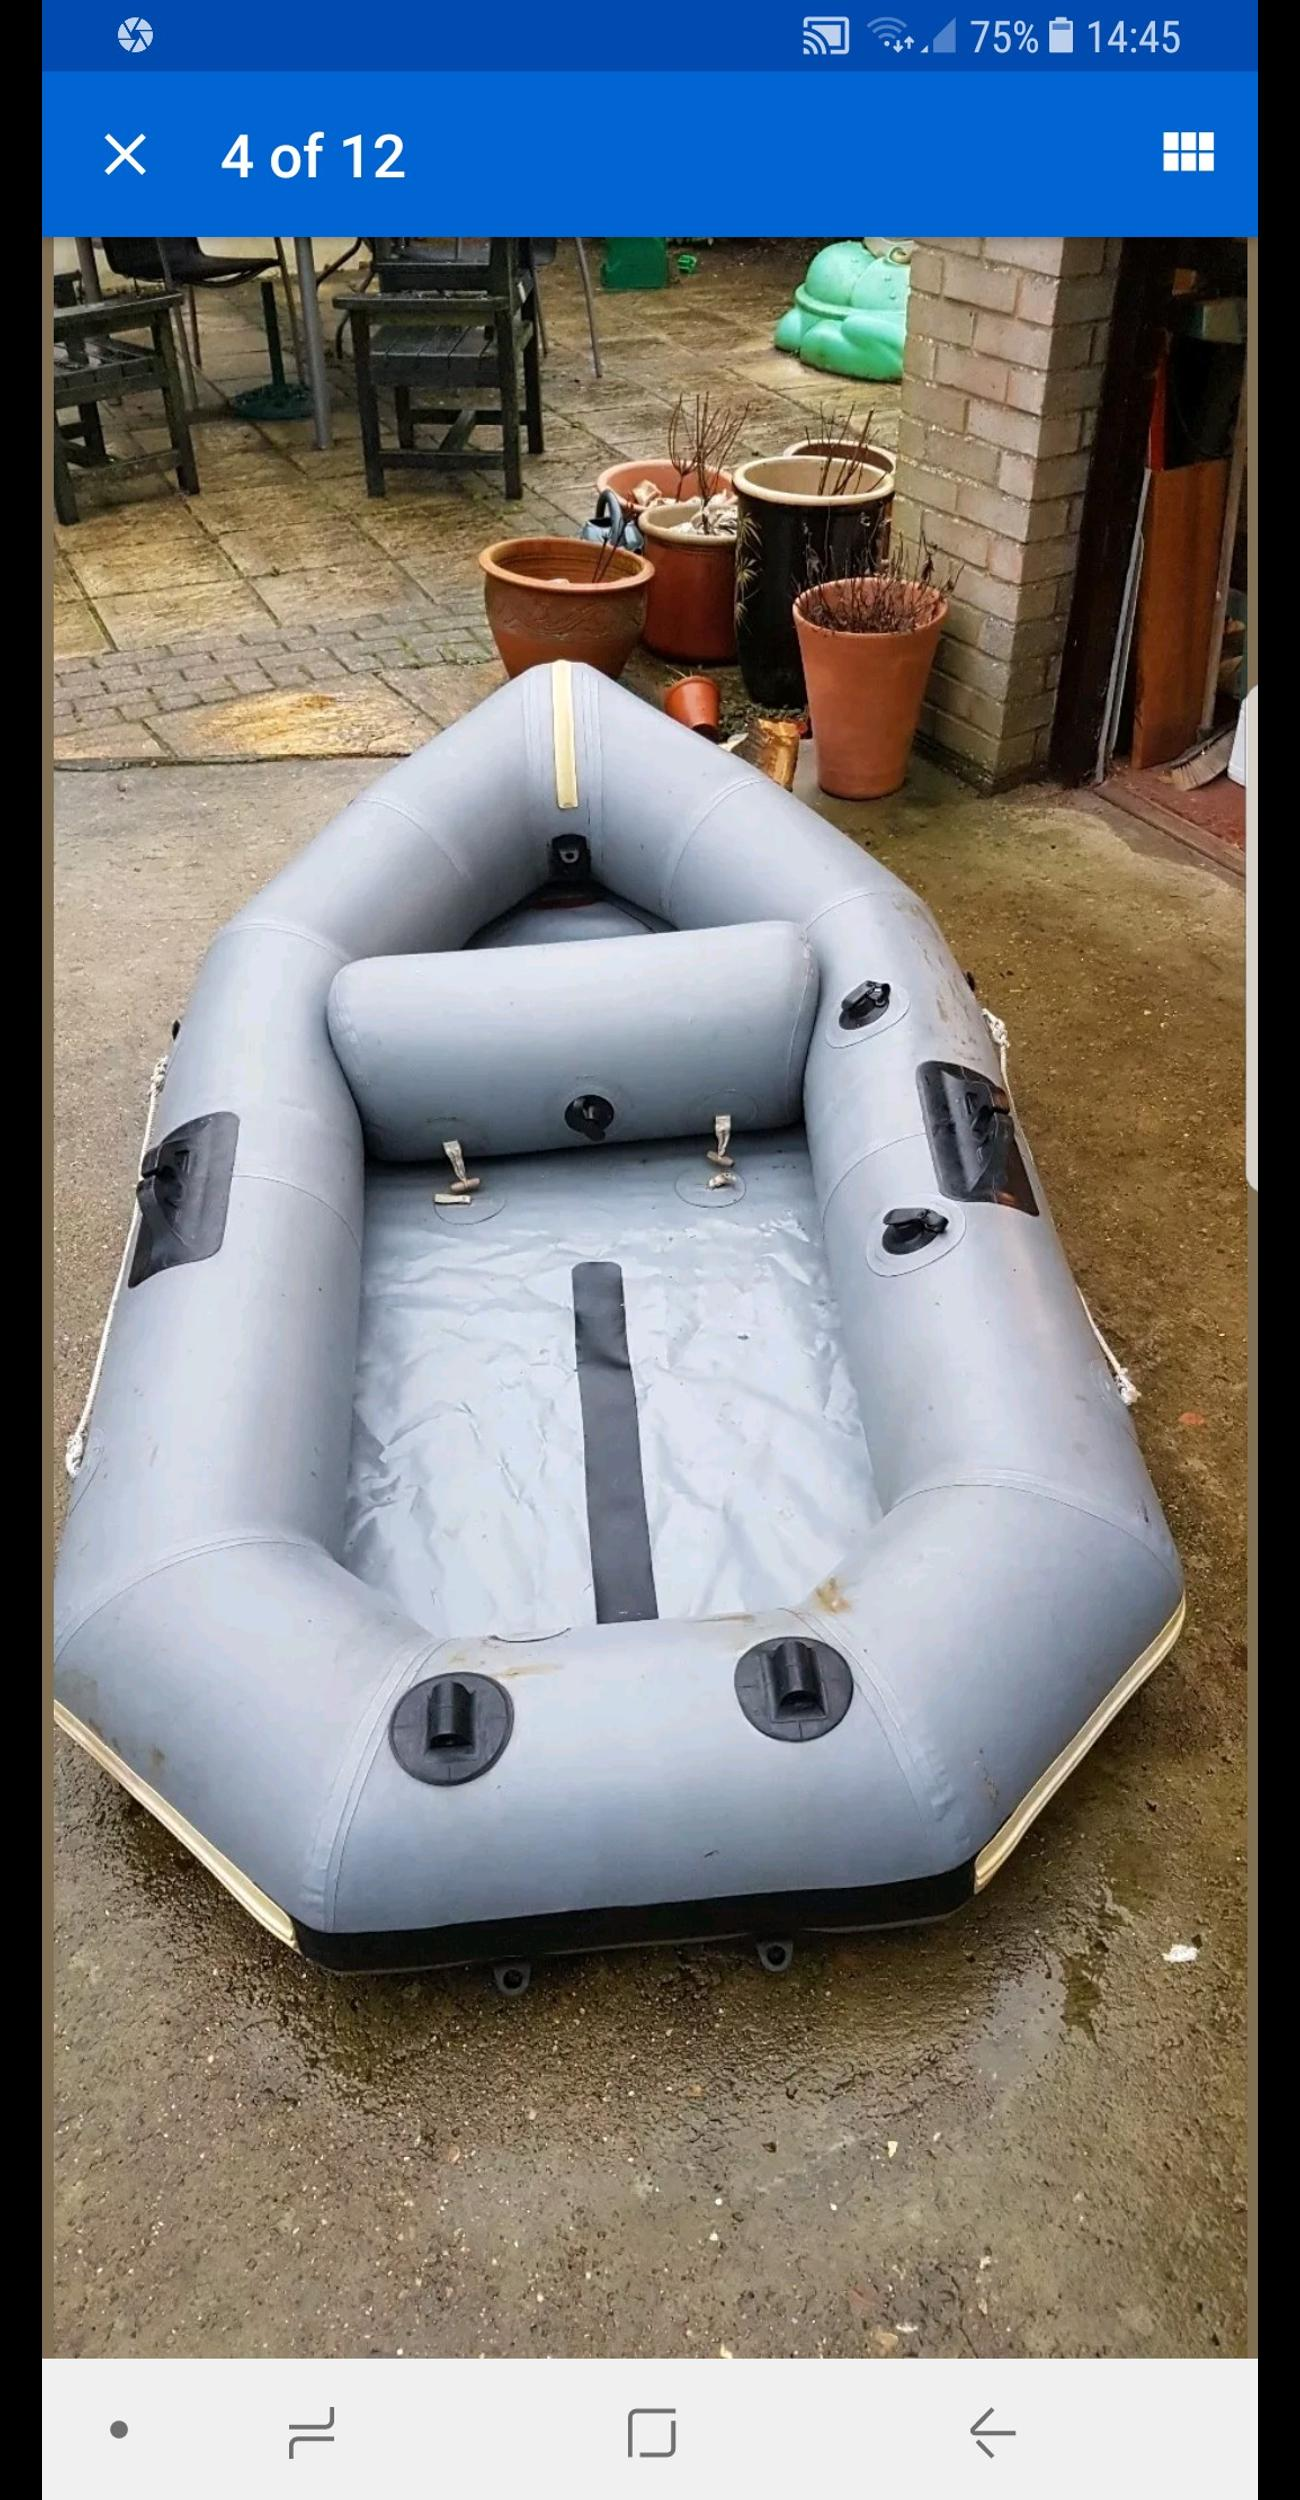 Avon redcrest inflatable dinghy in CW8 Weaverham for £100 00